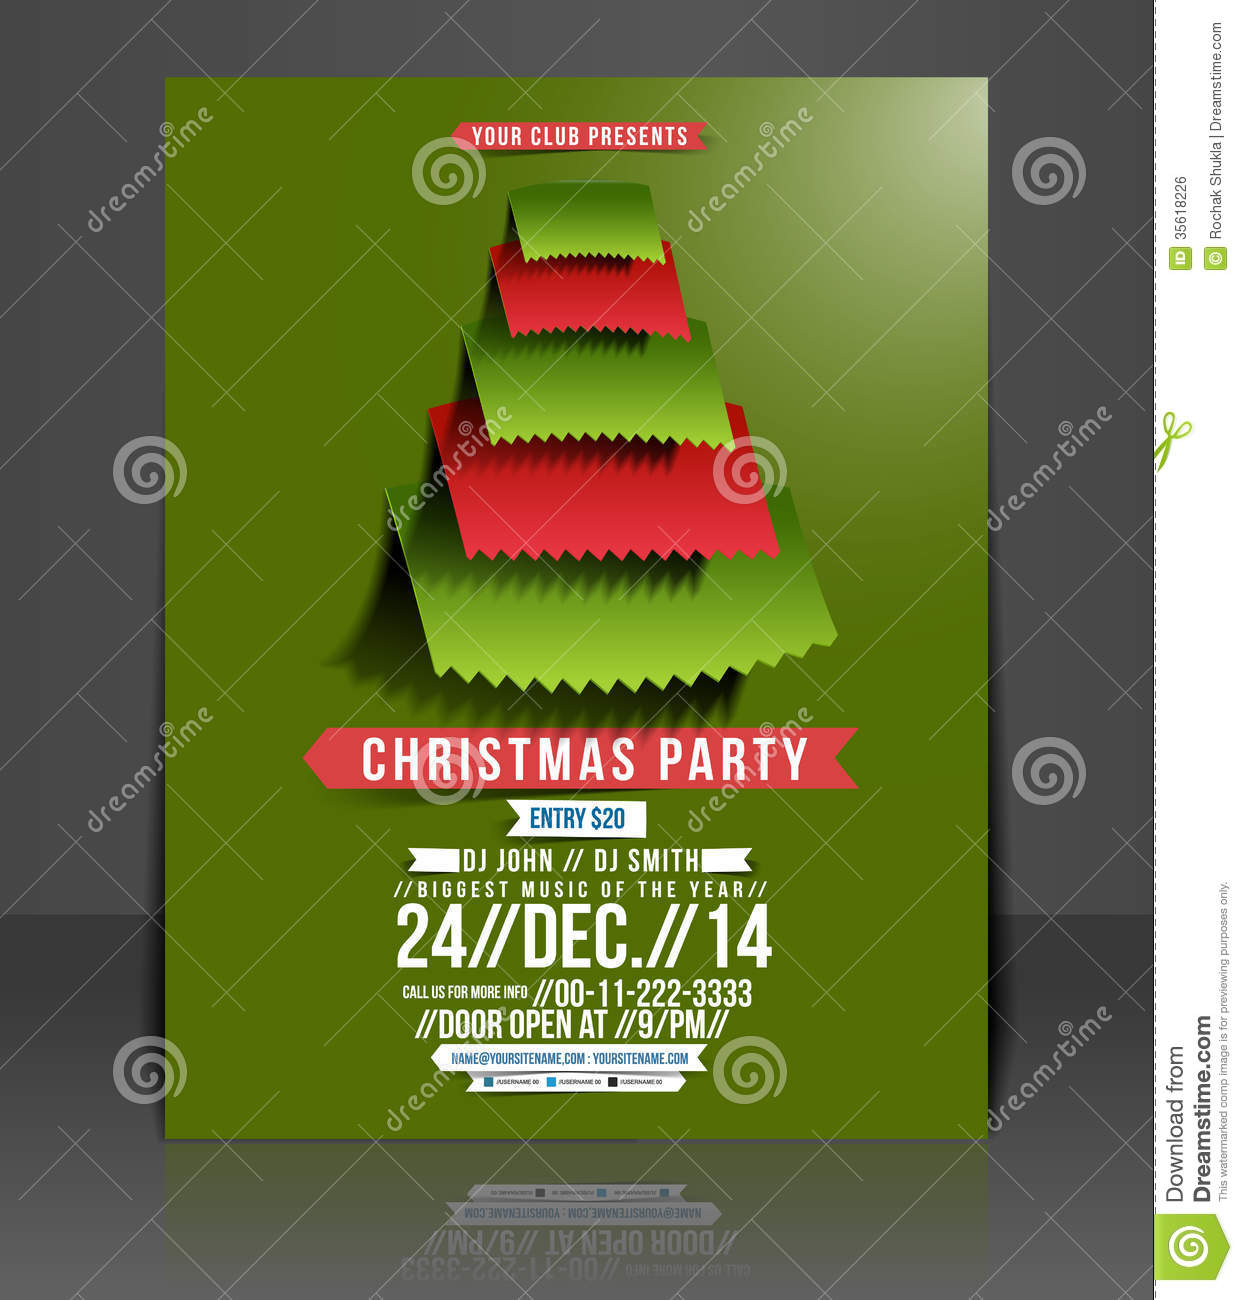 christmas party flyer royalty stock image image 35618226 christmas party flyer